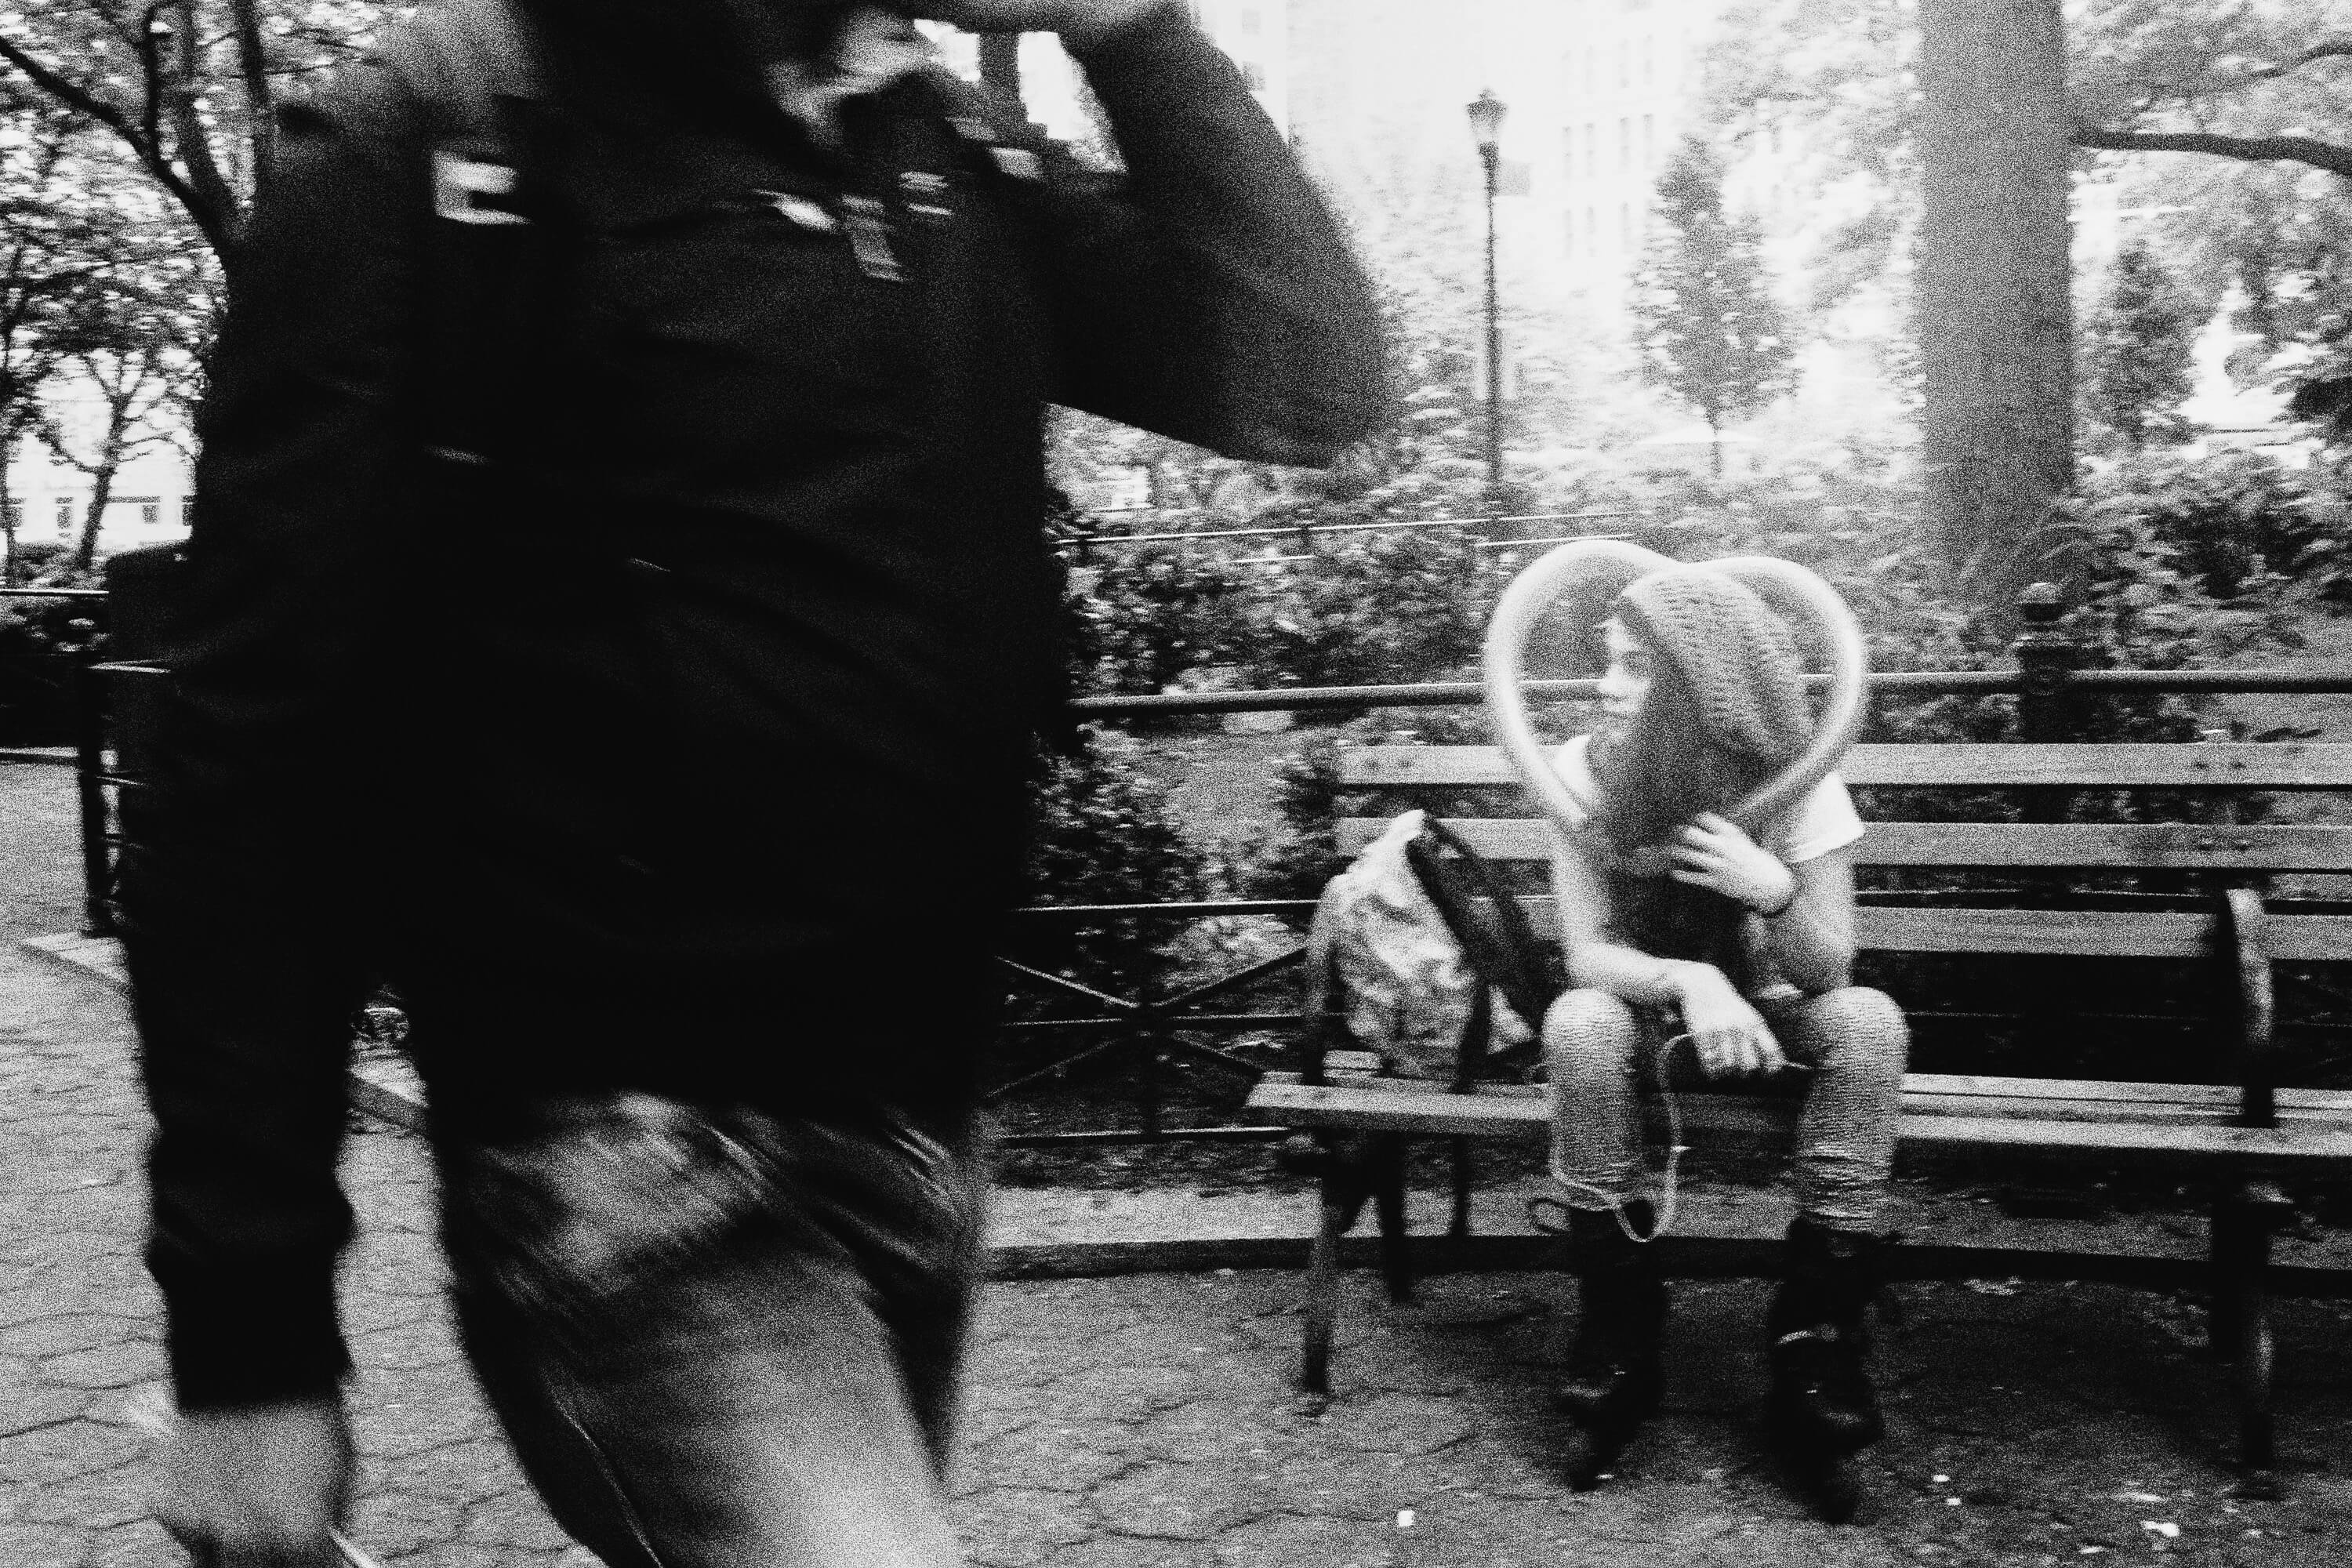 Balloon Heart, Olympus Tough Grainy Film Street Photography